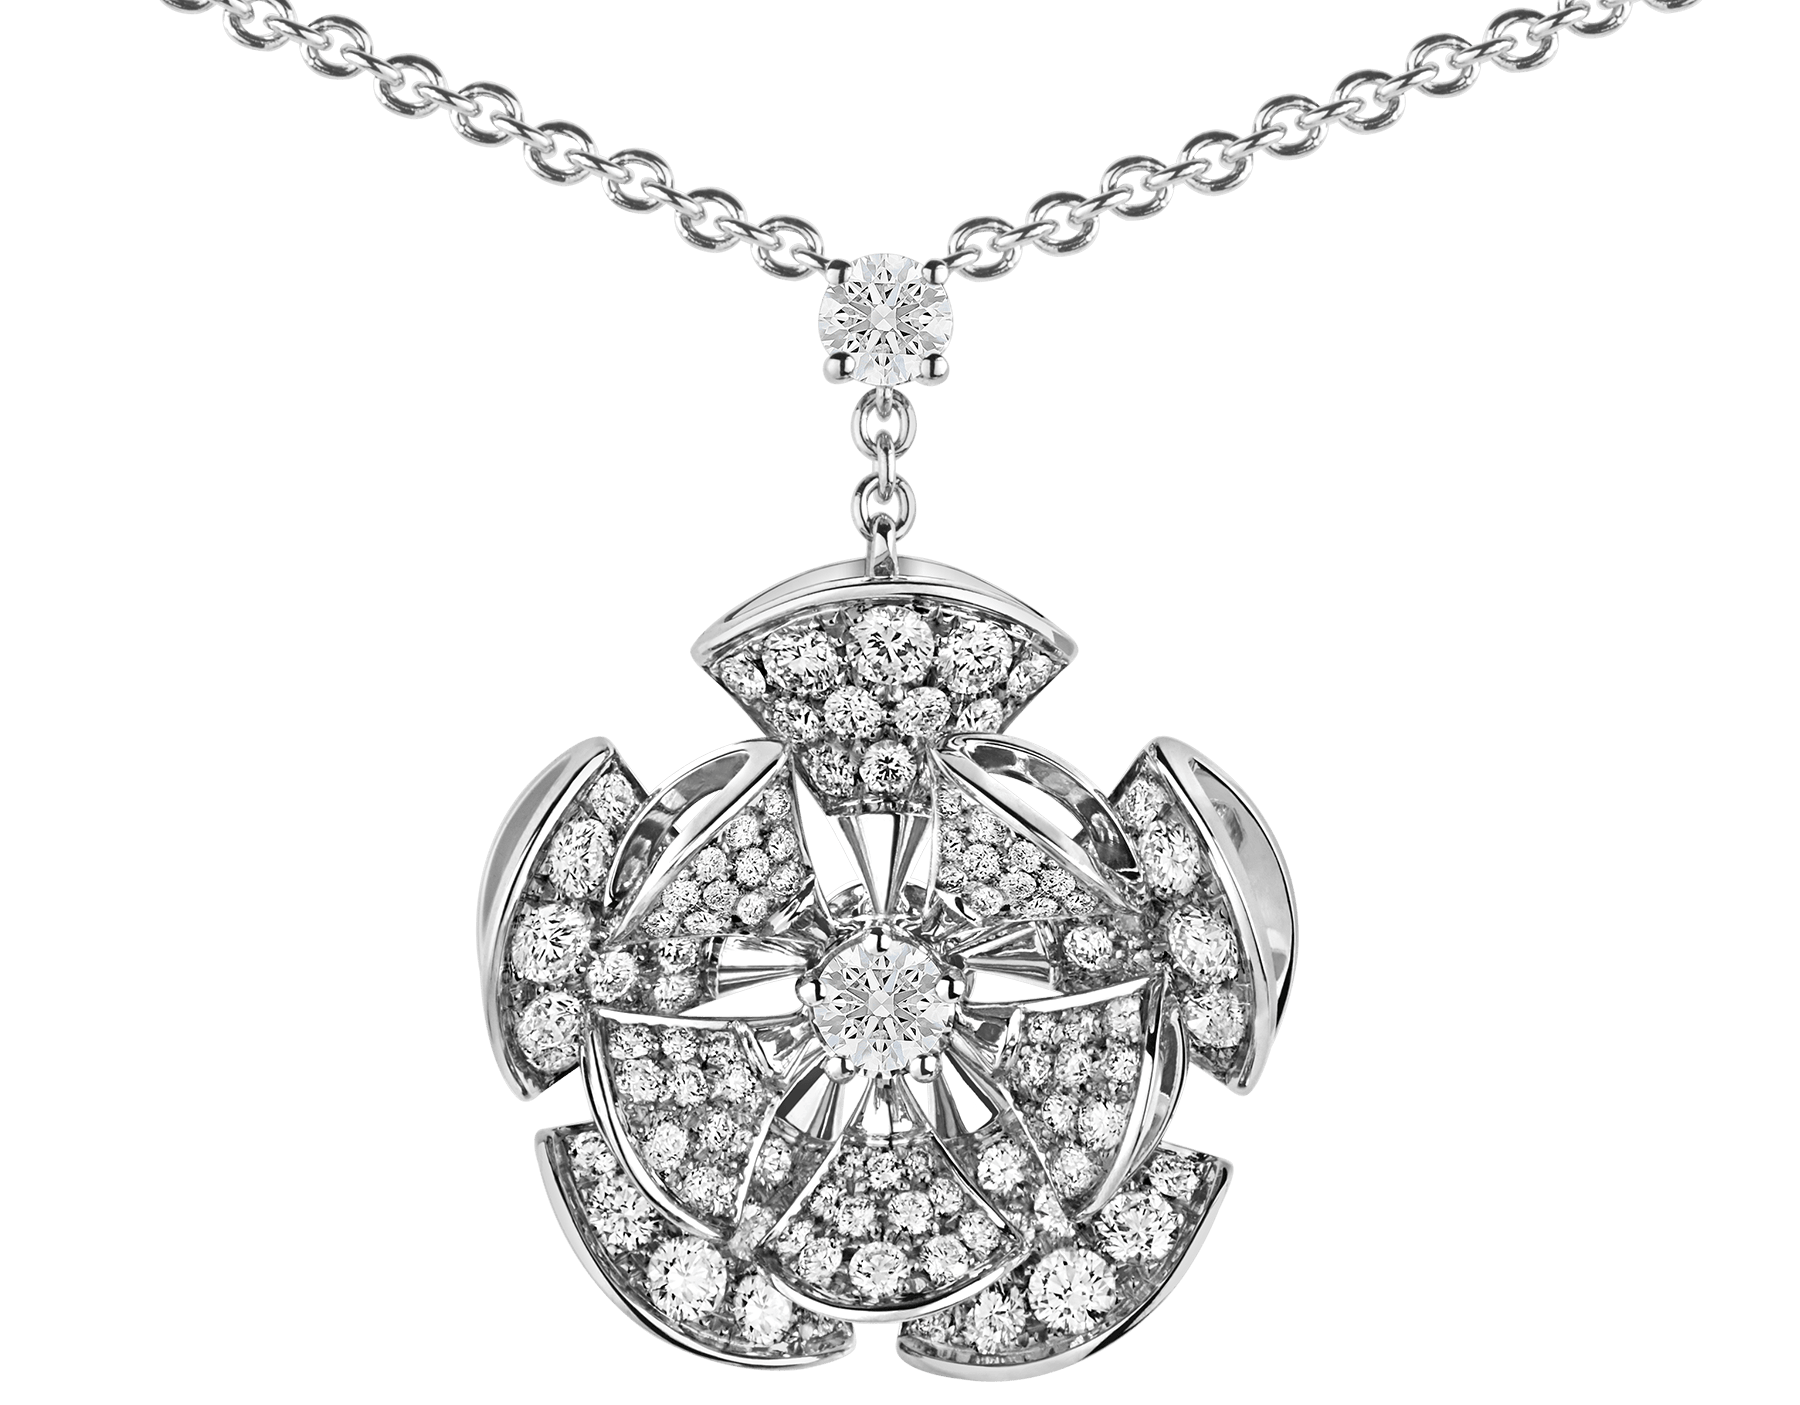 DIVAS' DREAM necklace in 18 kt white gold with a diamond on the chain and 18 kt white gold pendant set with central diamond and full pavé diamonds. 350854 image 3